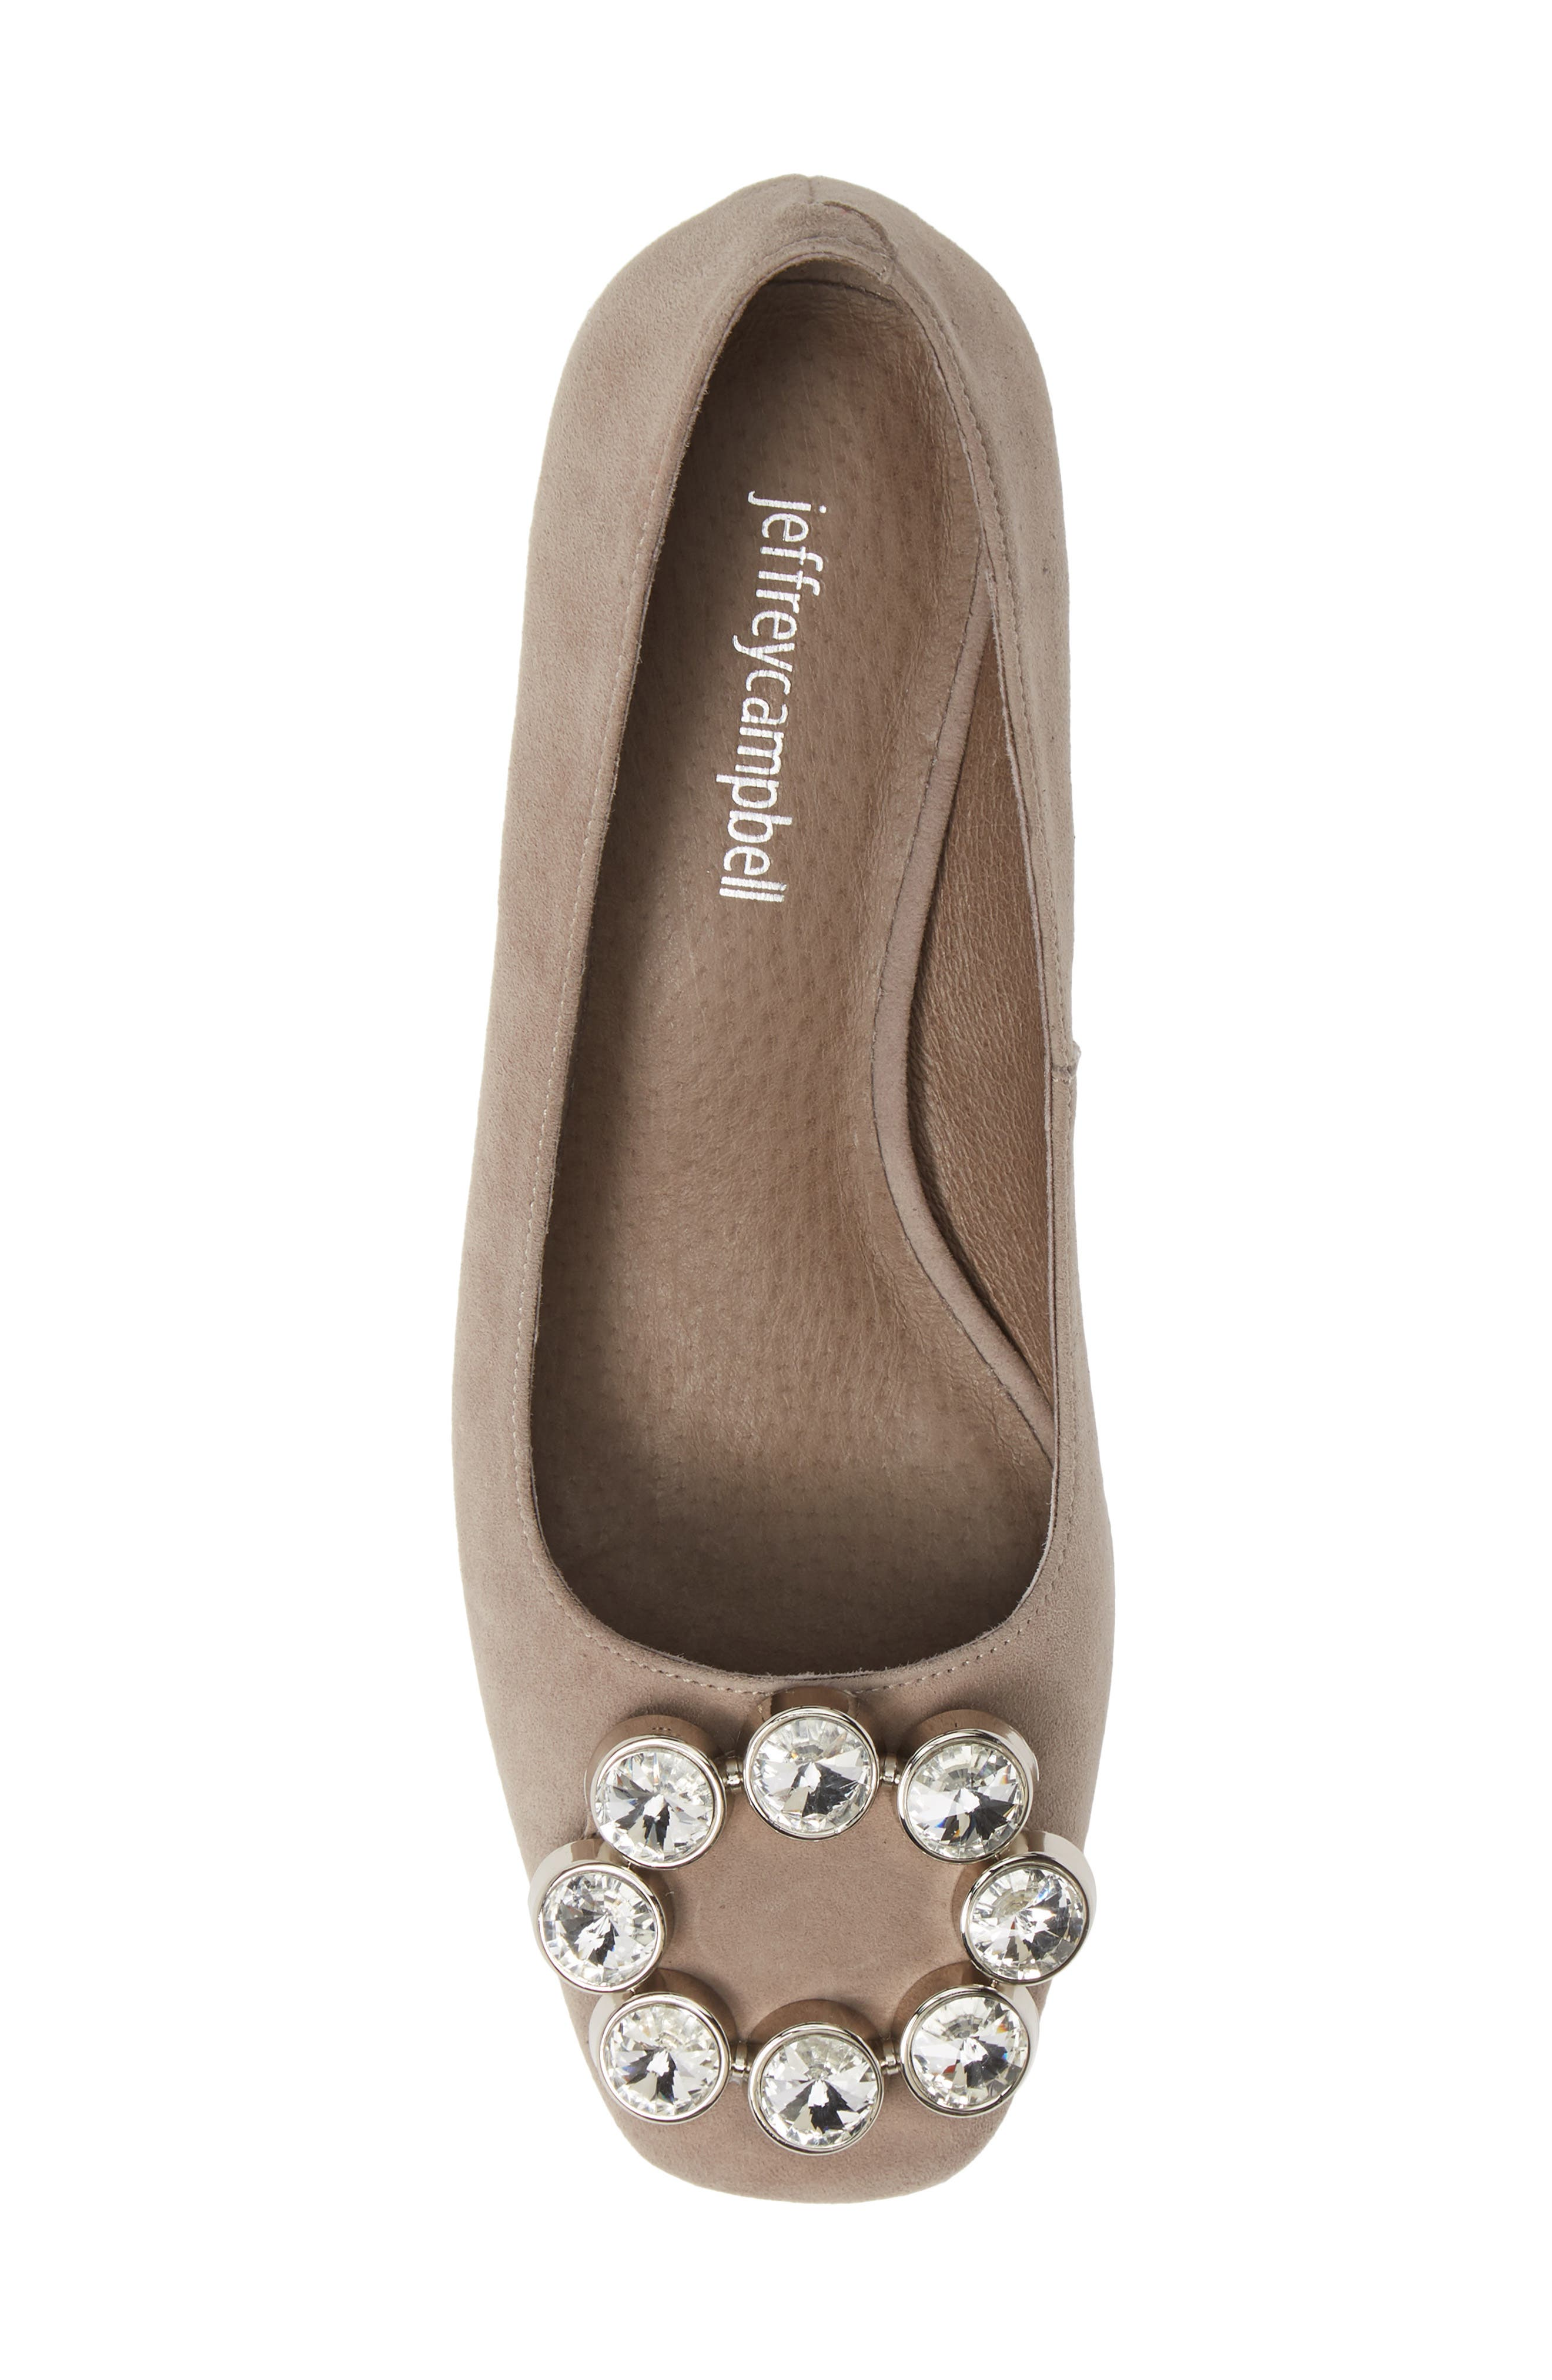 JEFFREY CAMPBELL, Carys Pump, Alternate thumbnail 5, color, TAUPE SUEDE